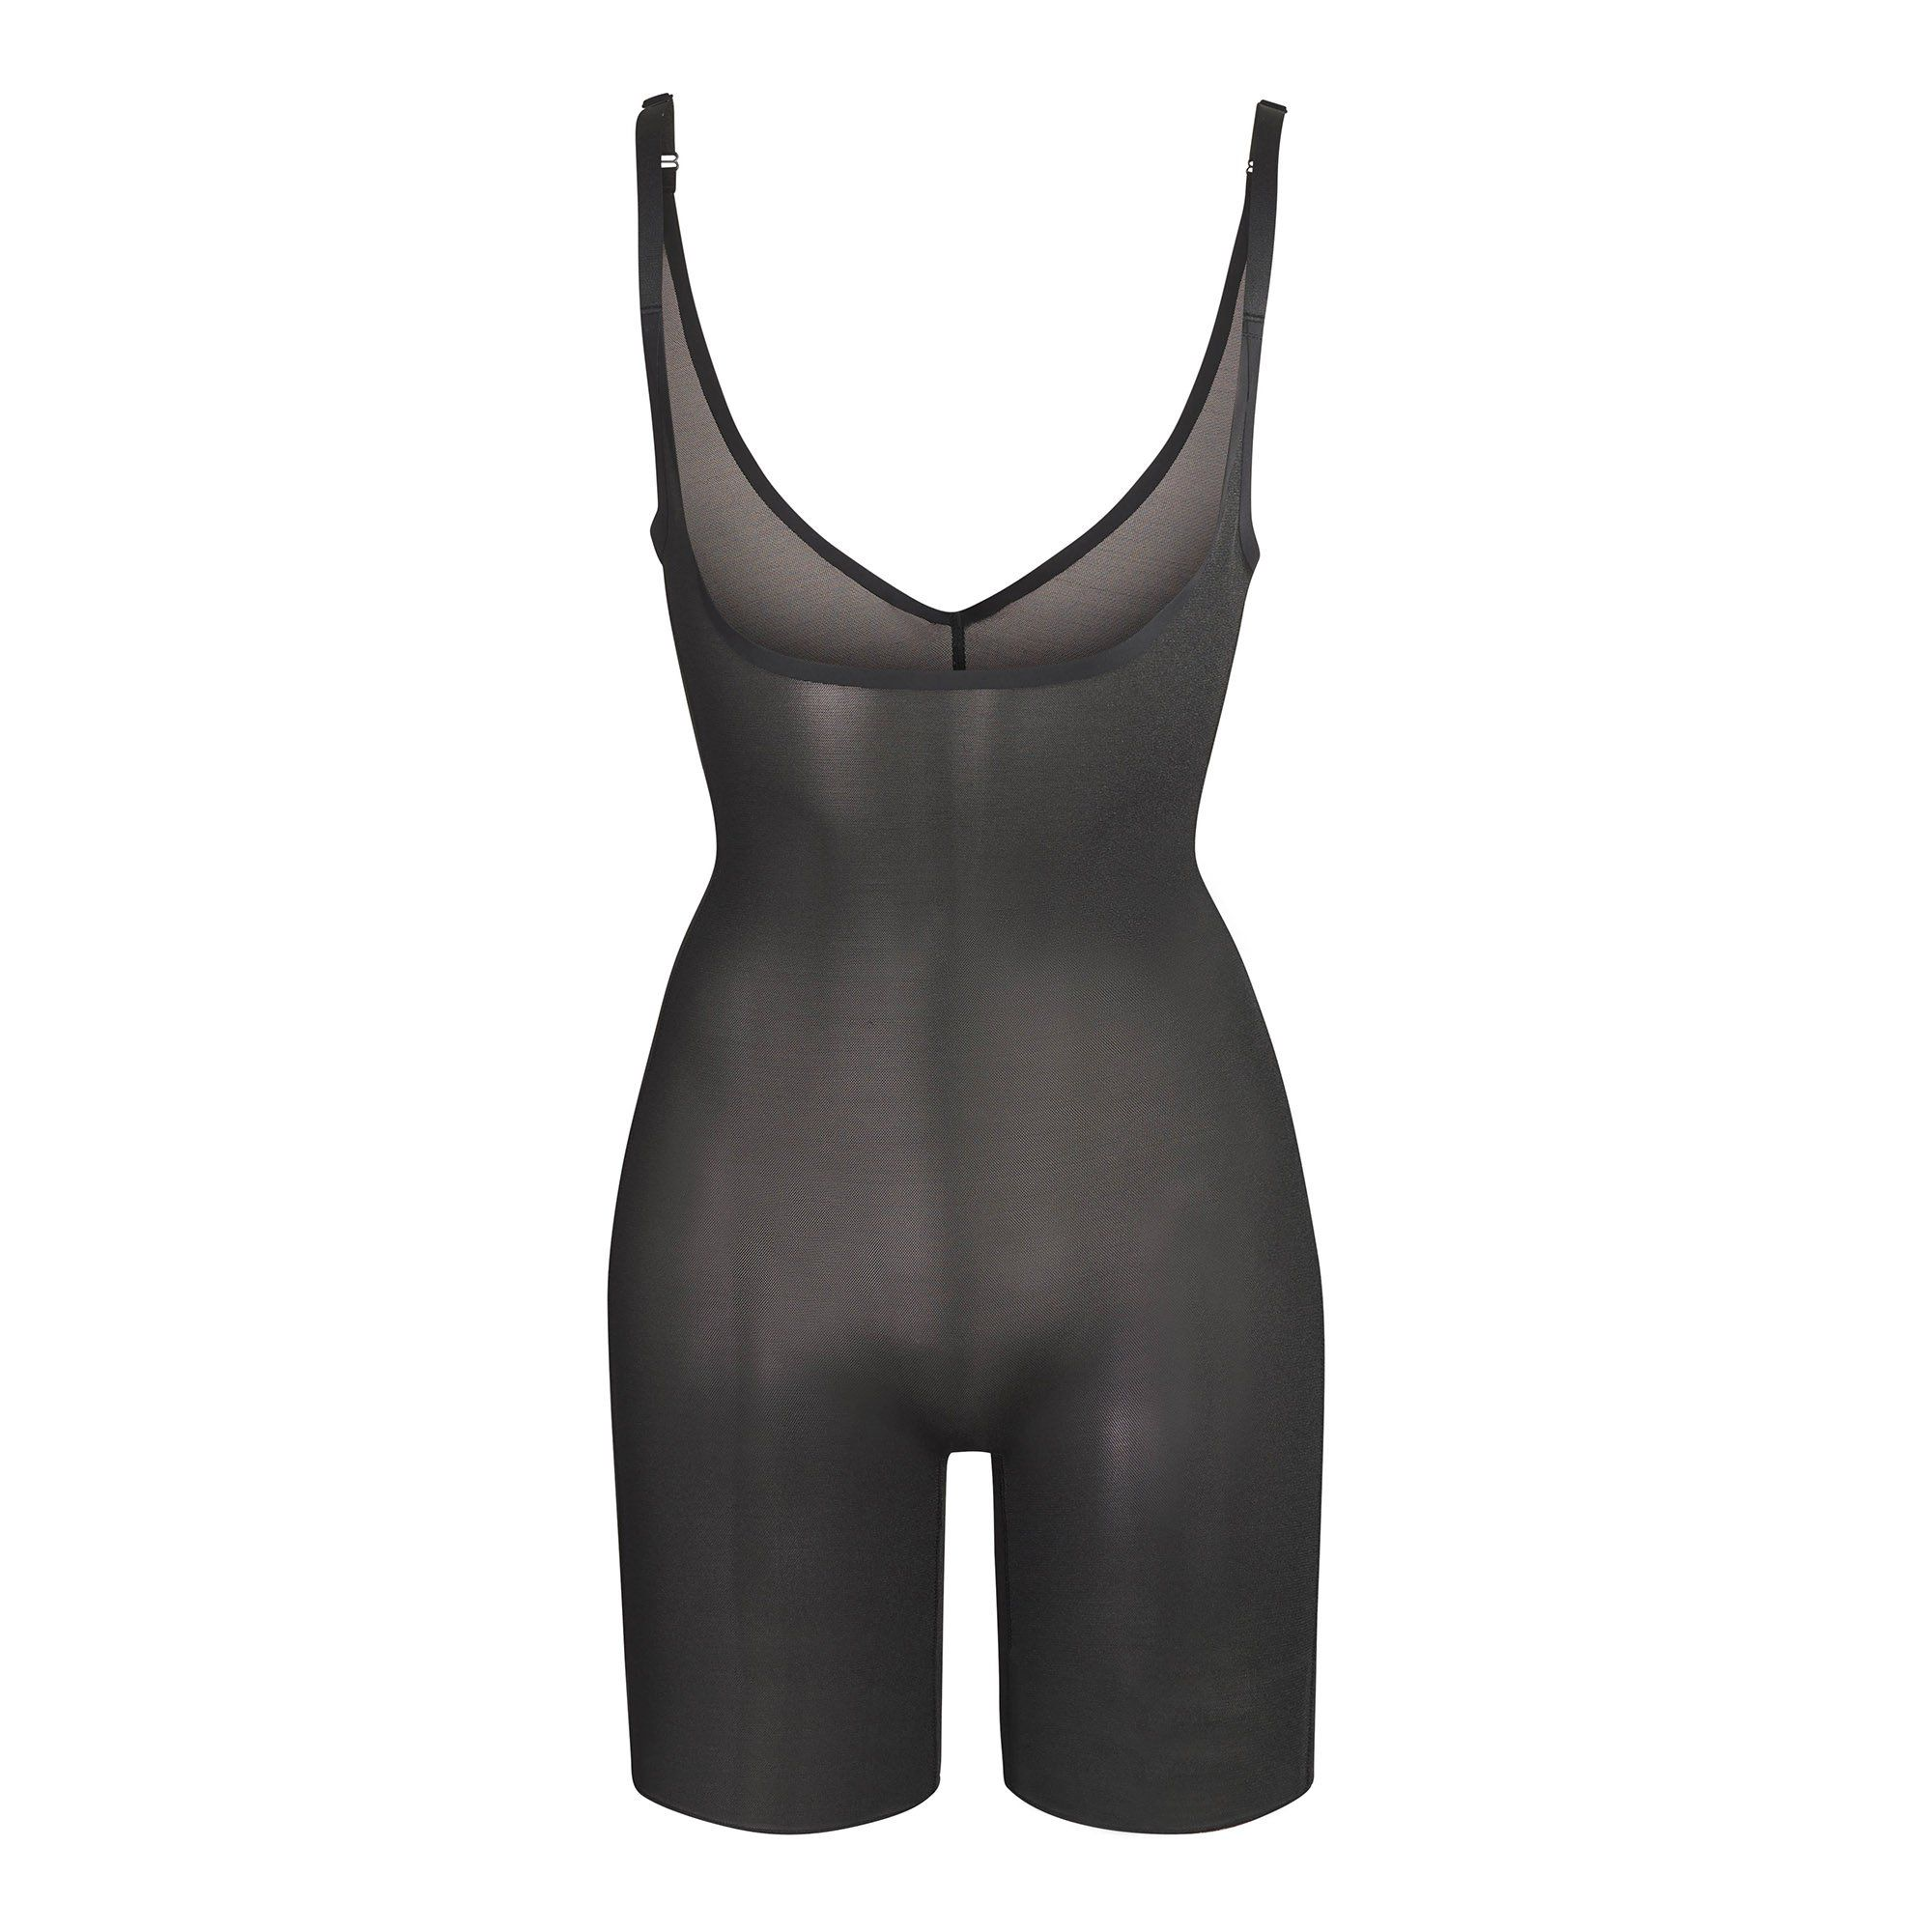 SKIMS Mesh Sheer Sculpt Bodysuit Shapewear - Black